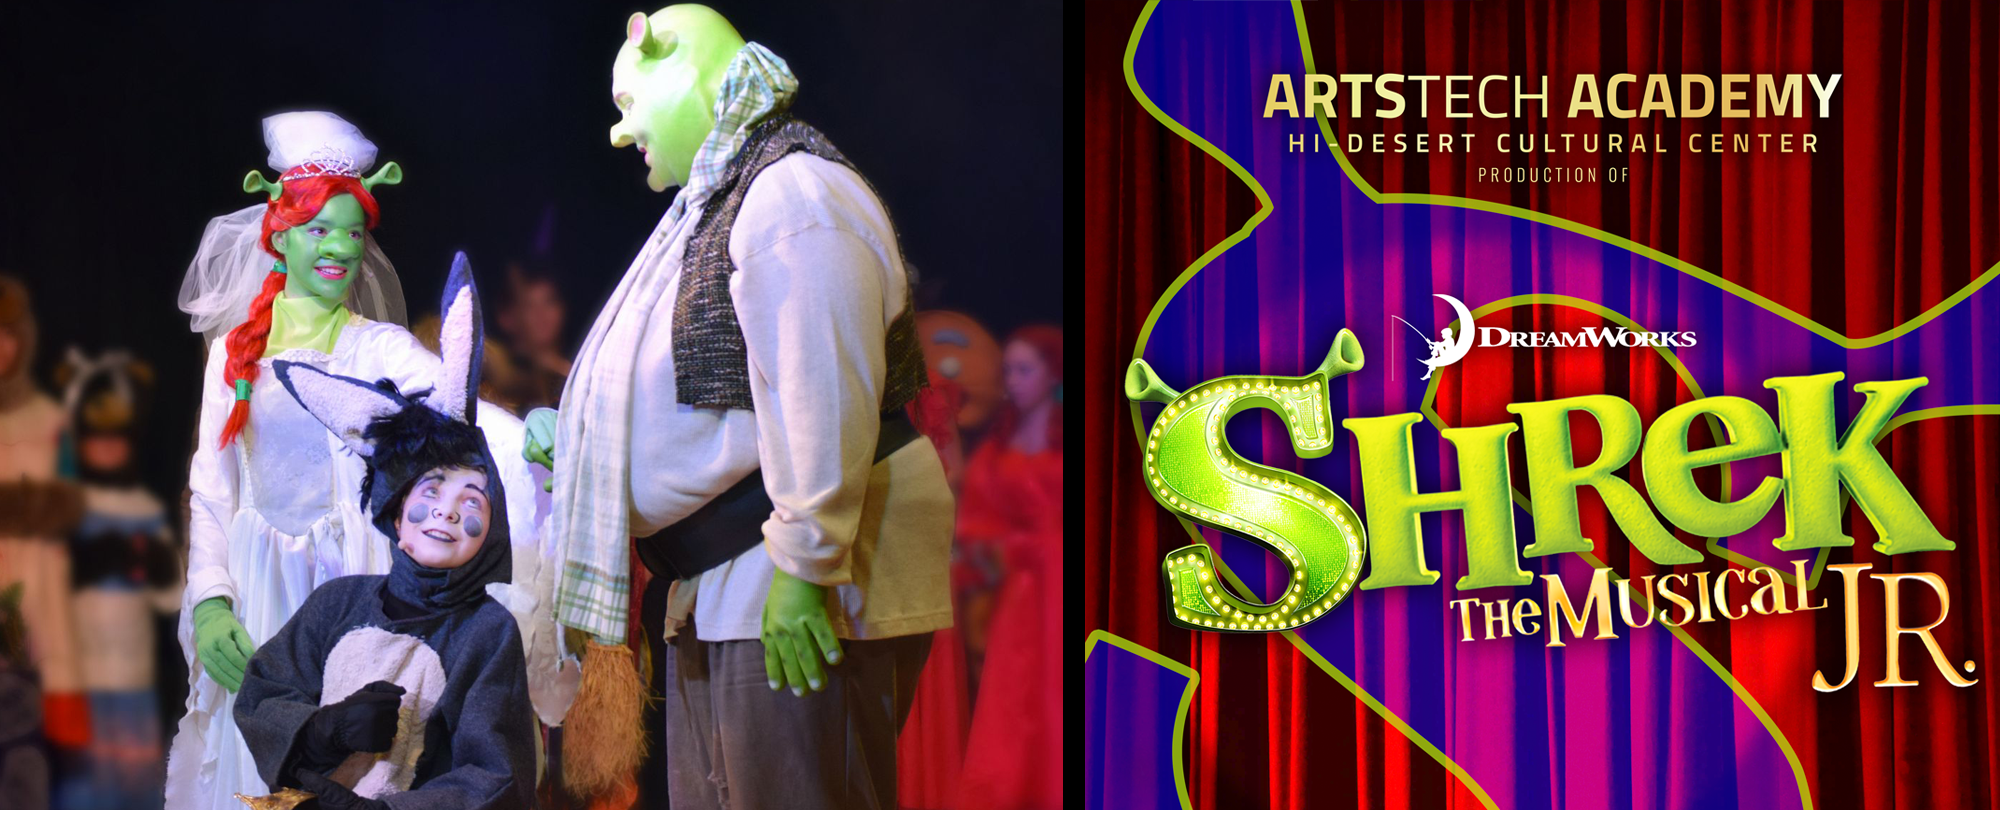 Shrek-Photos-Header